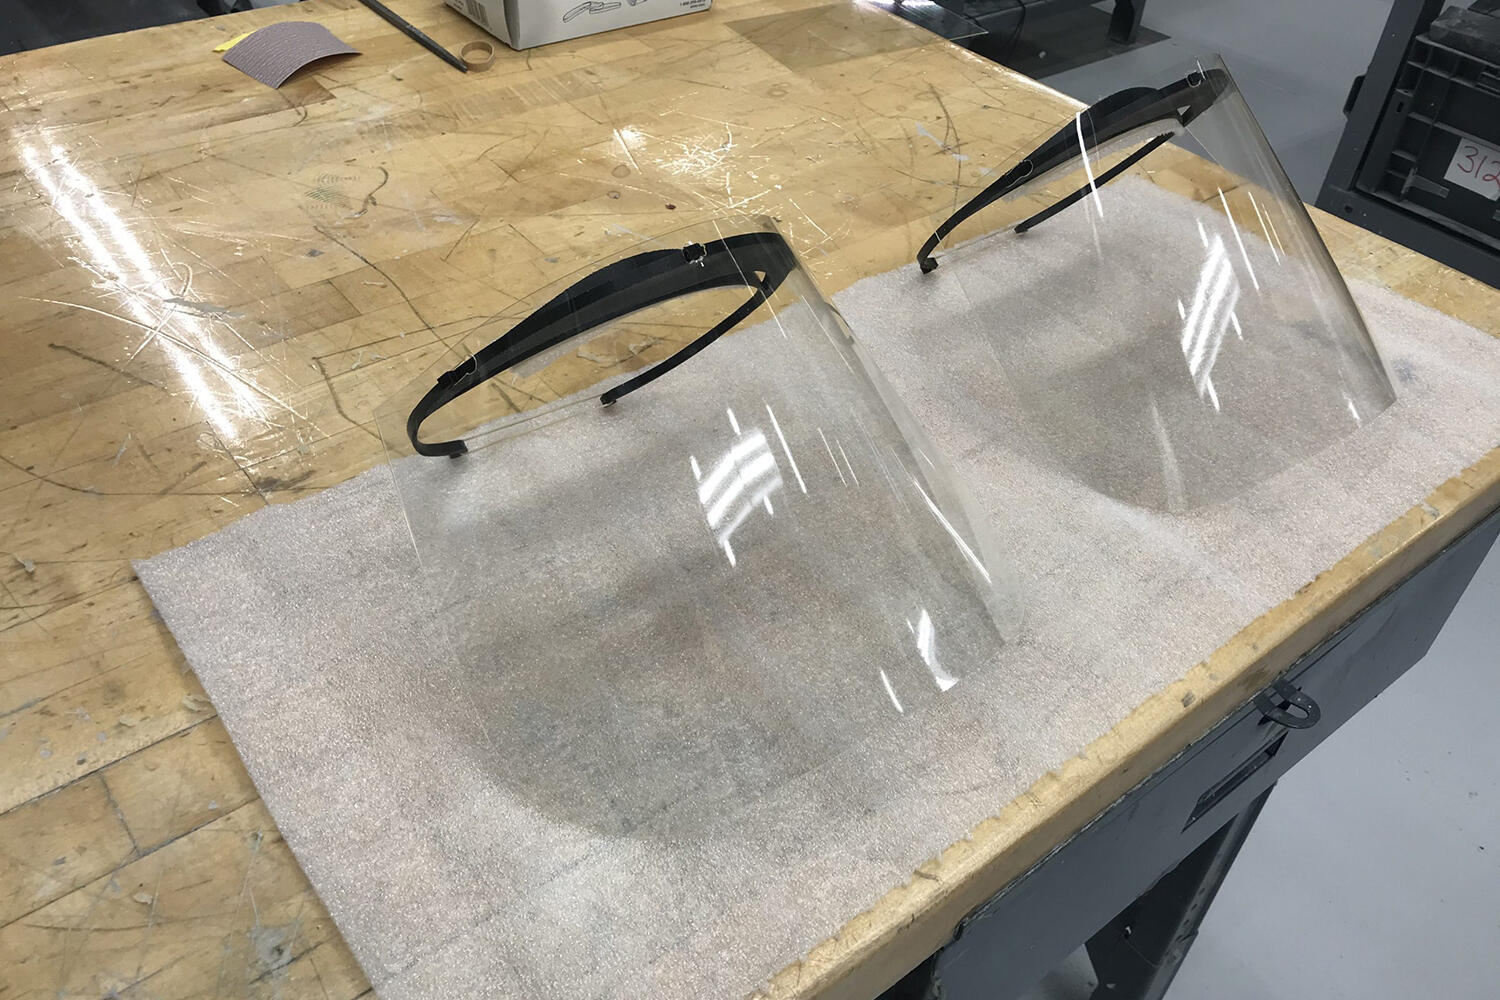 Toyota 3D-printed face shield